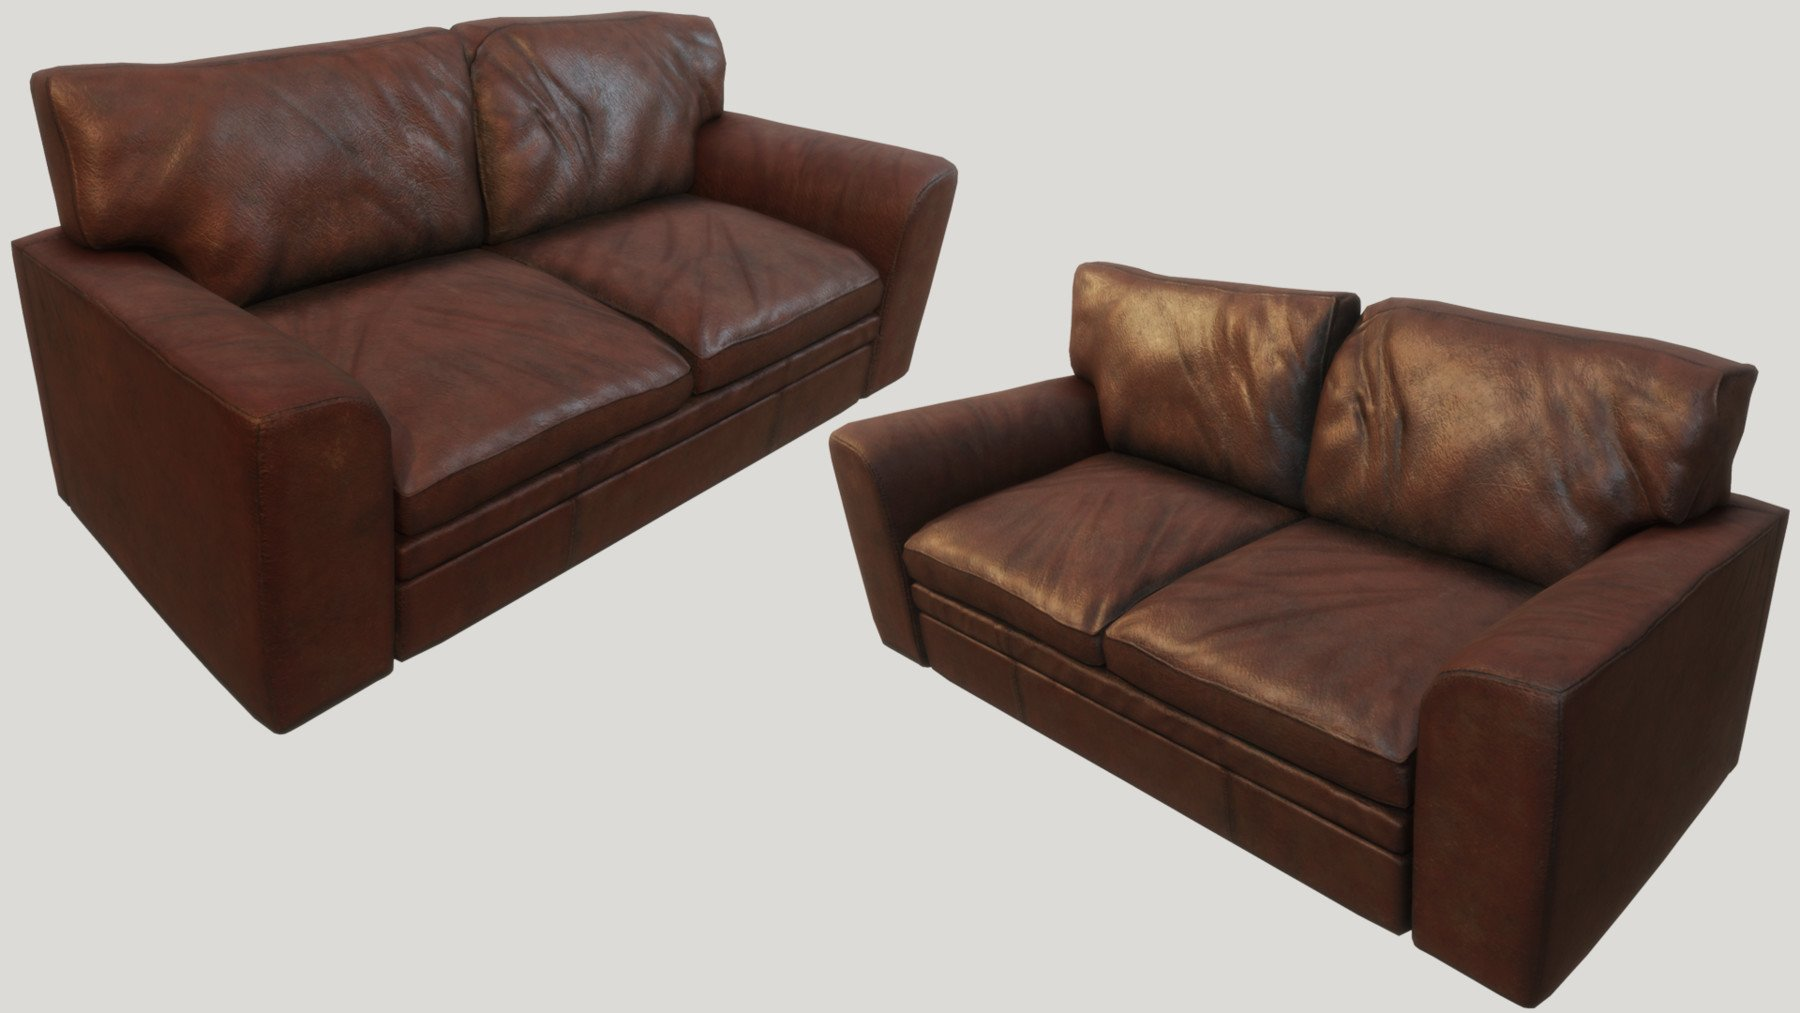 Old Leather Couches PBR